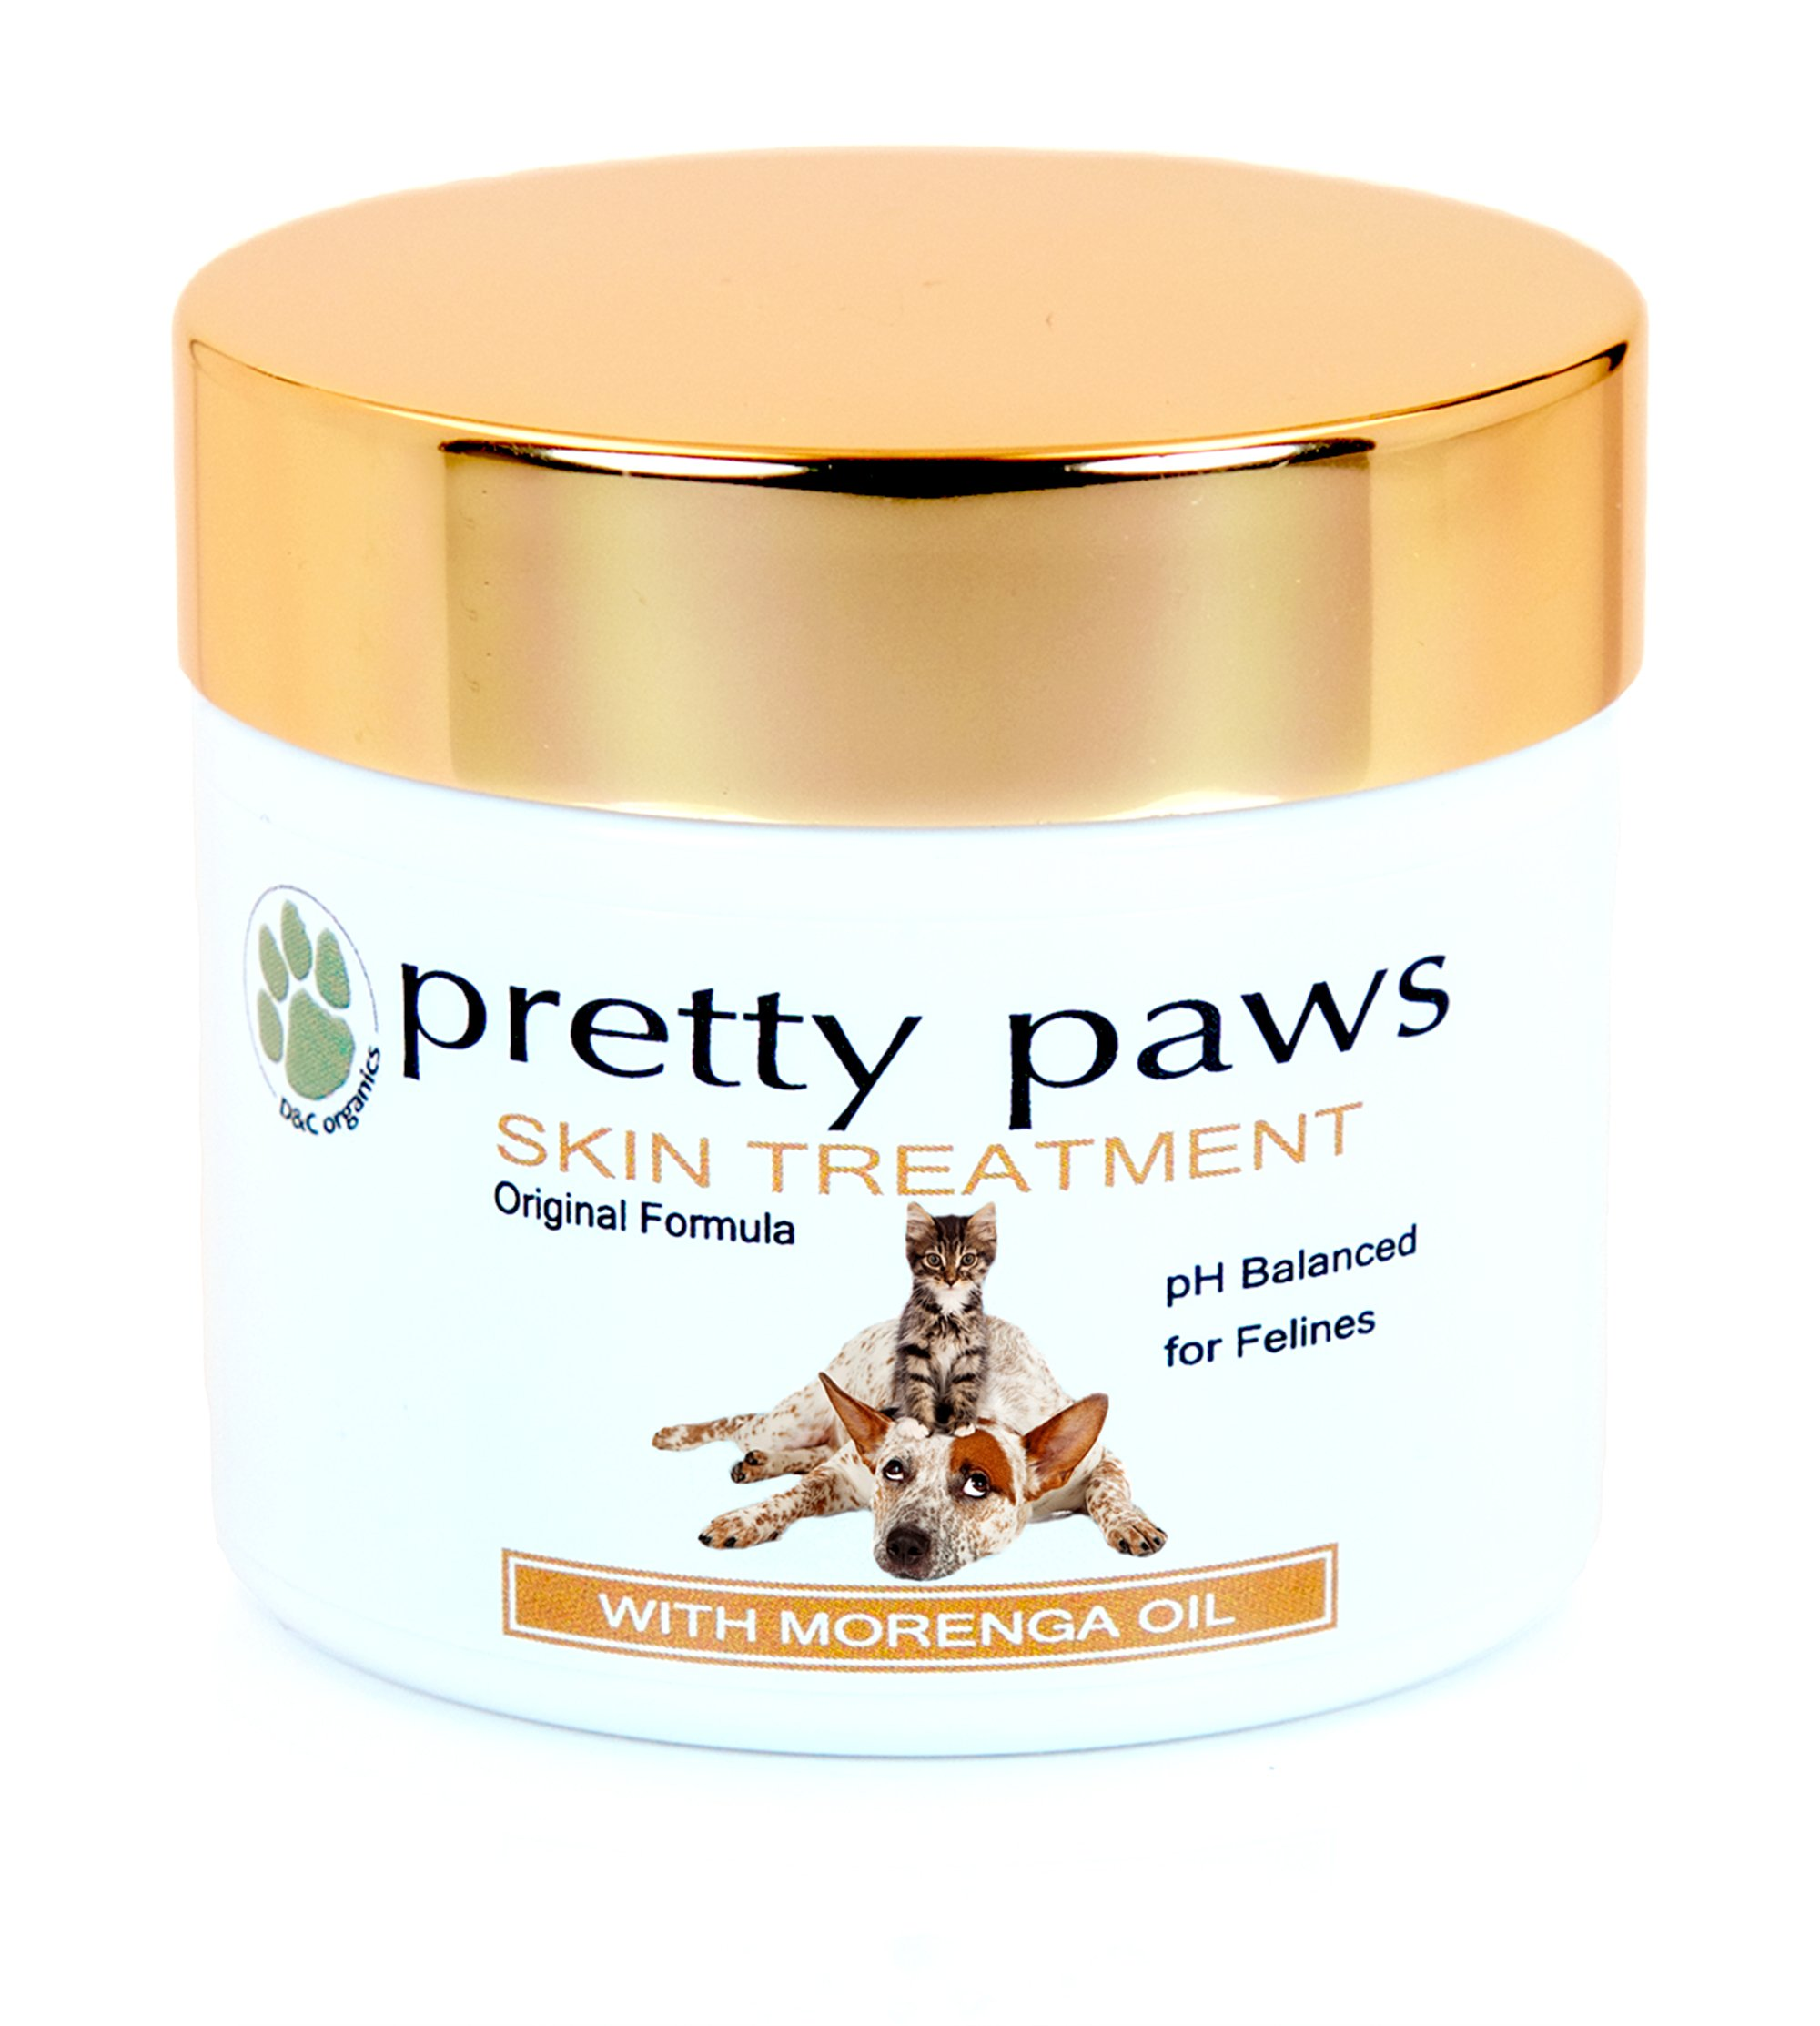 Cat Hot Spot Treatment. Pain Relief for Paw Disorders, Dermatitis, Infection, Dry Itchy Skin, Rashes, Bites, Allergic Reactions. Antiseptic Antifungal Holistic Vet Approved - Concentrated Pretty Paws by D&C Organics